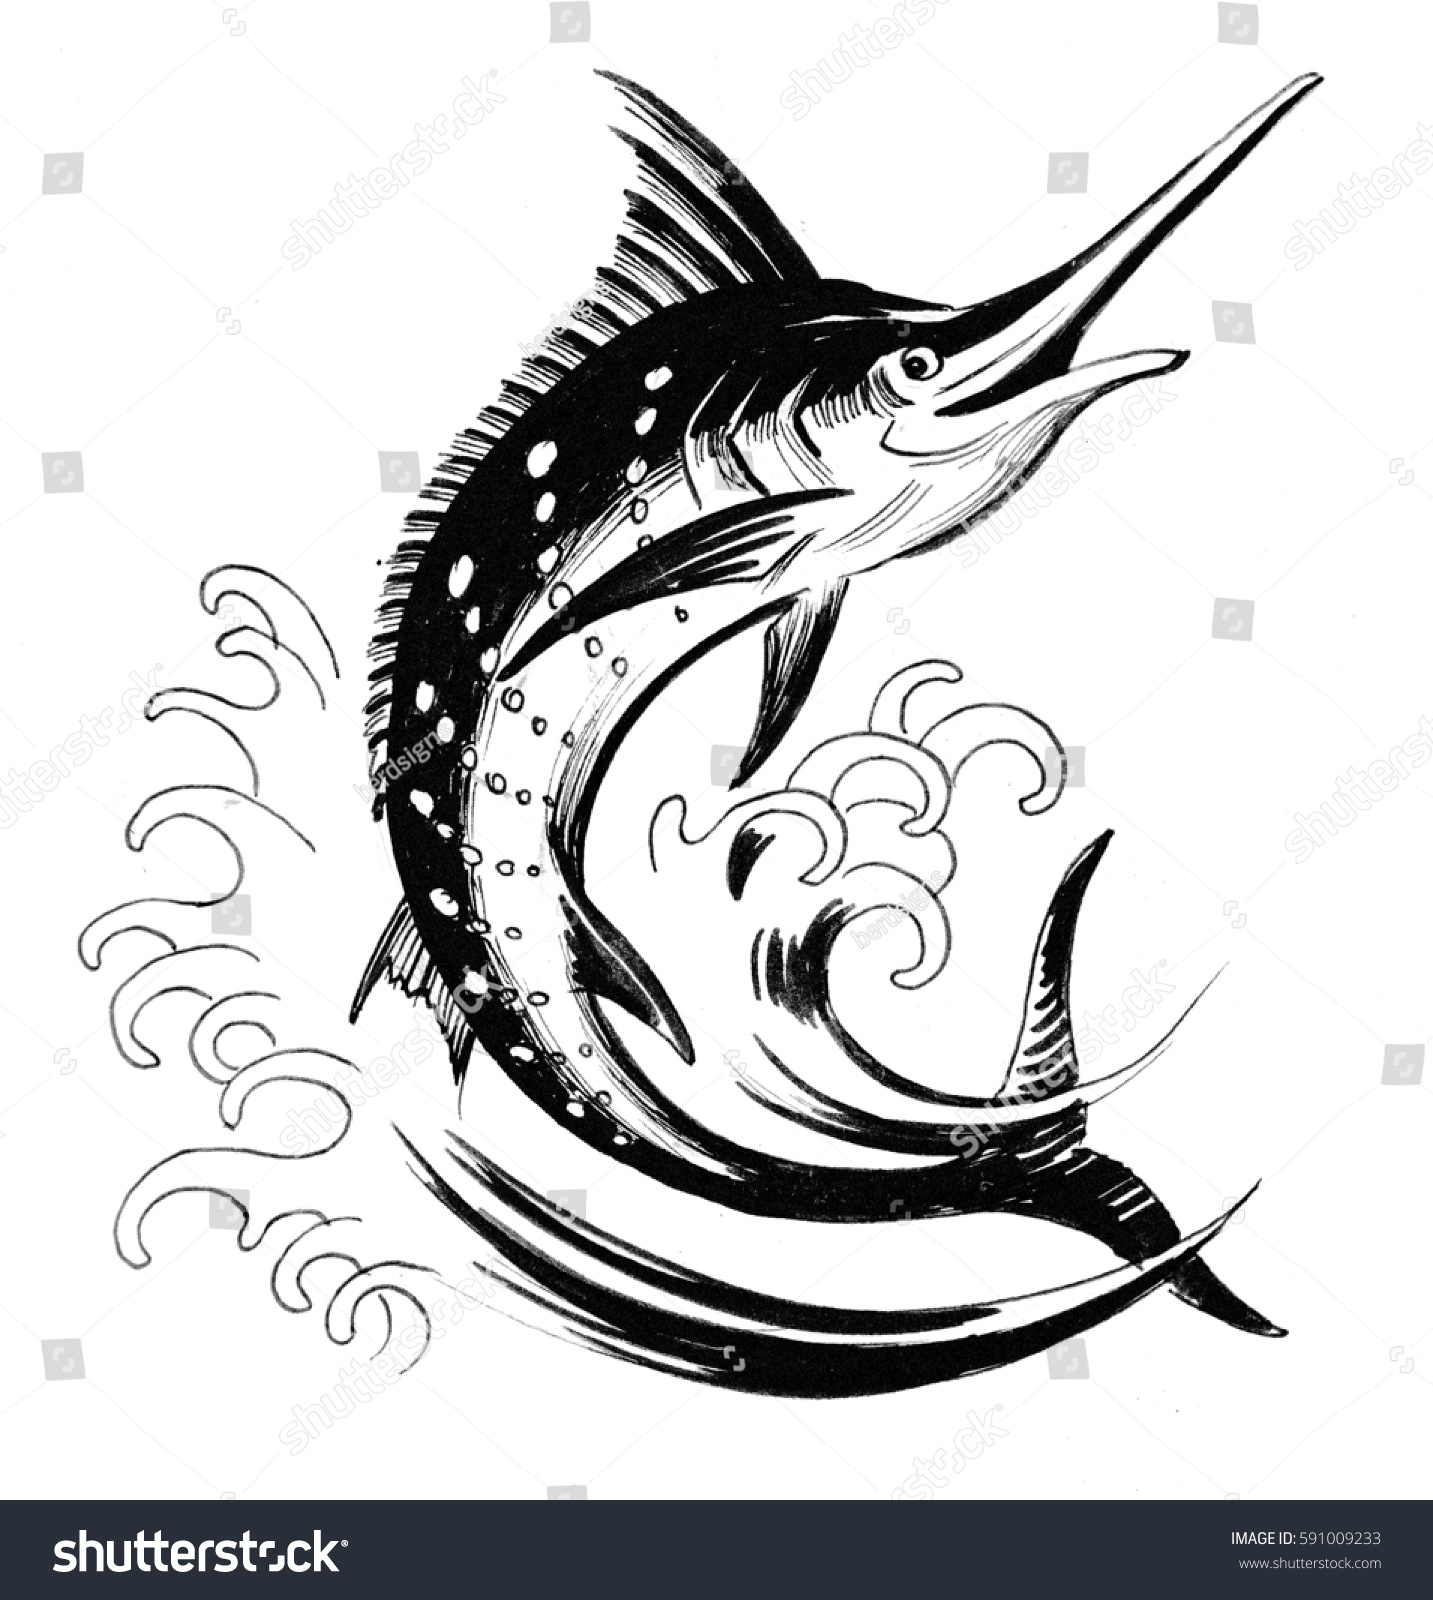 Uncategorized Swordfish Drawing black white drawing swordfish stock illustration 591009233 and of a swordfish